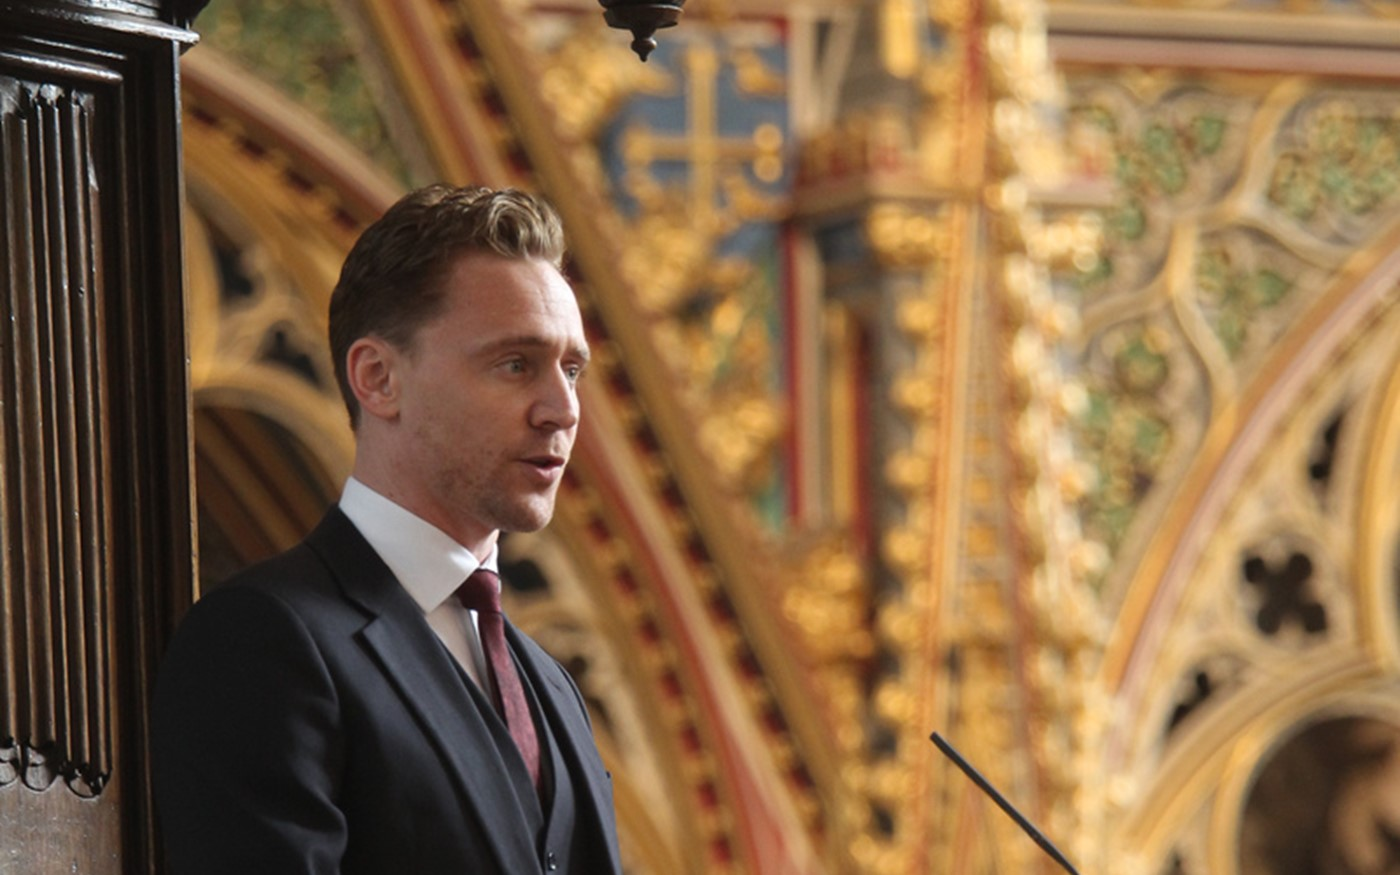 Tom Hiddlestone reads from the Nave Pulpit